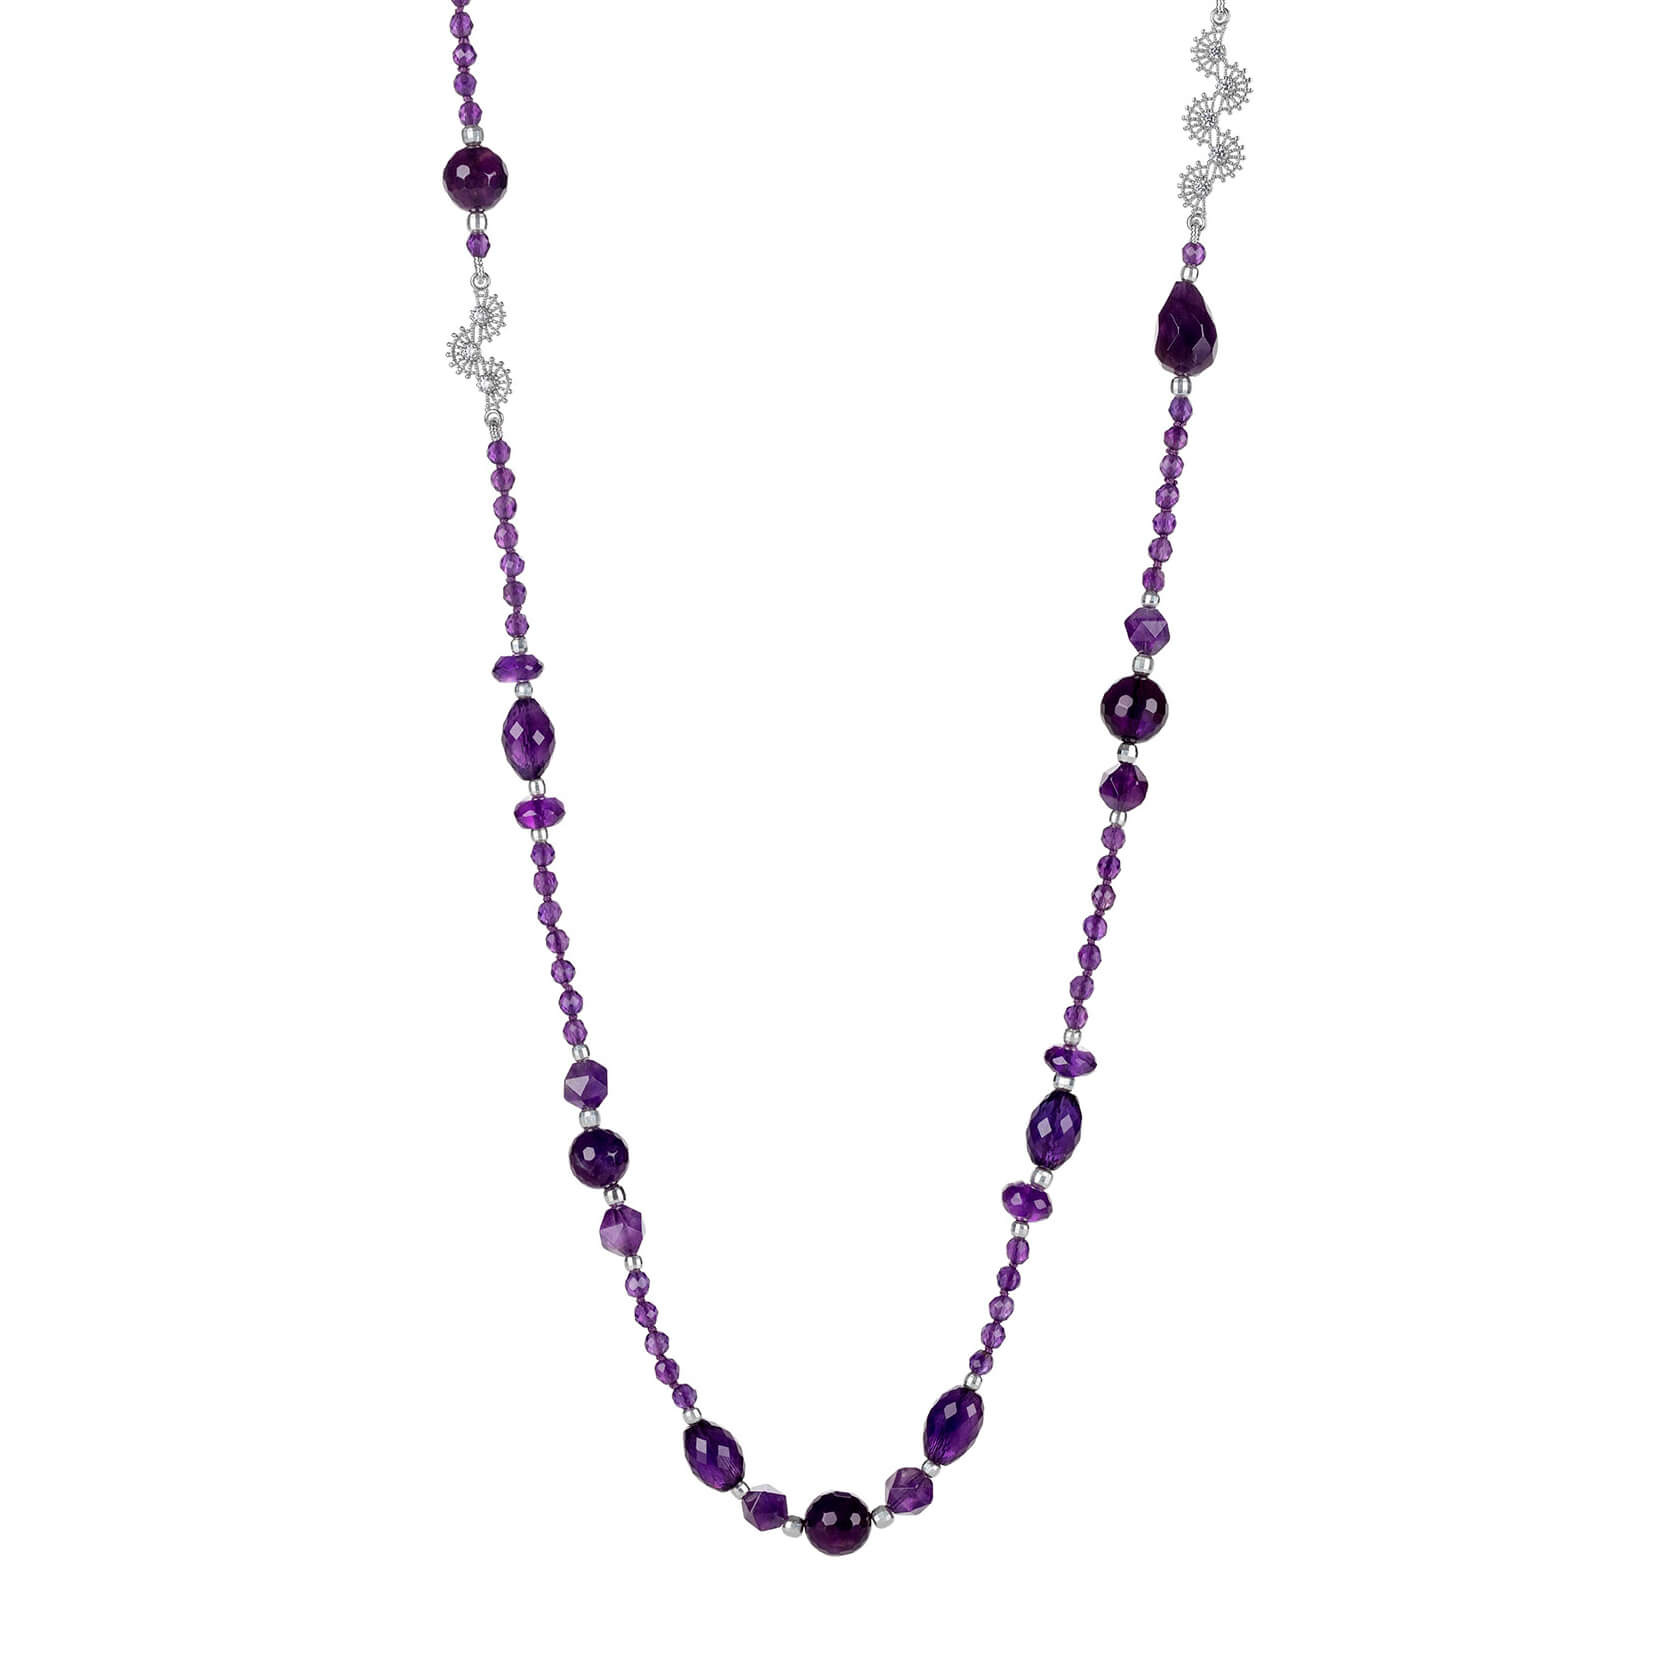 Long amethyst and silver necklace